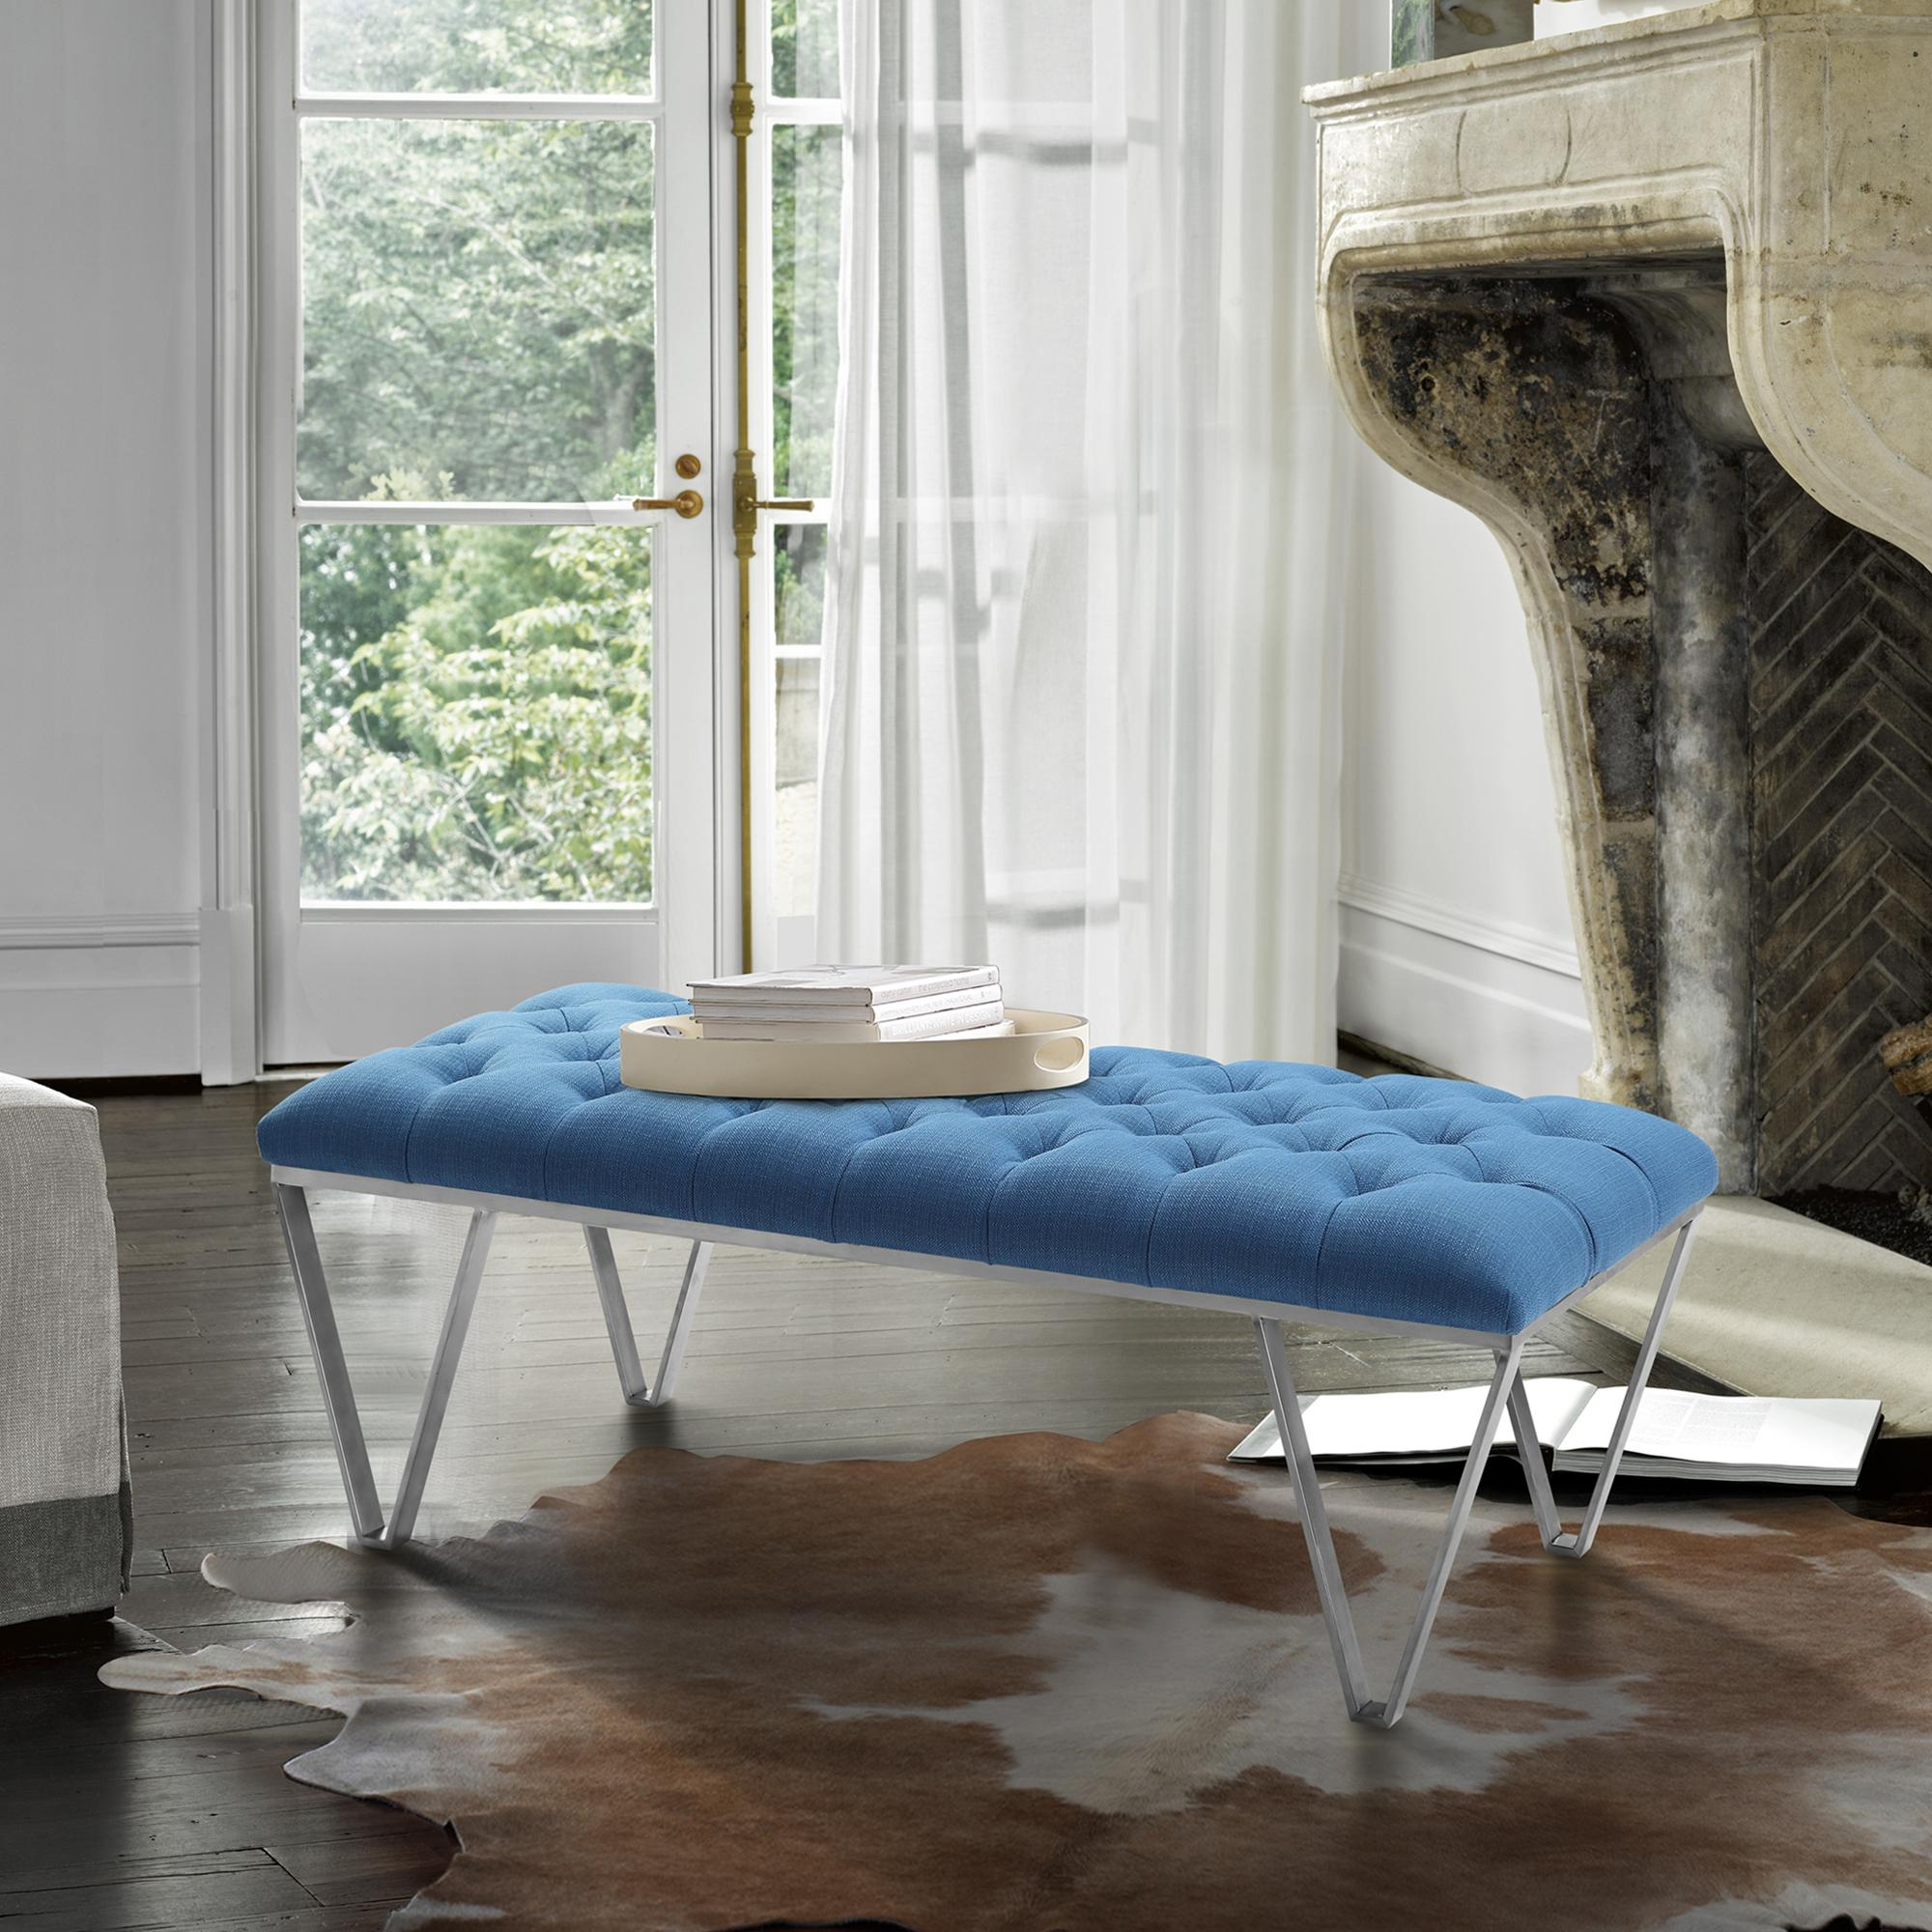 Armen Living Serene Contemporary Tufted Bench in Brushed Stainless Steel with Blue Fabric